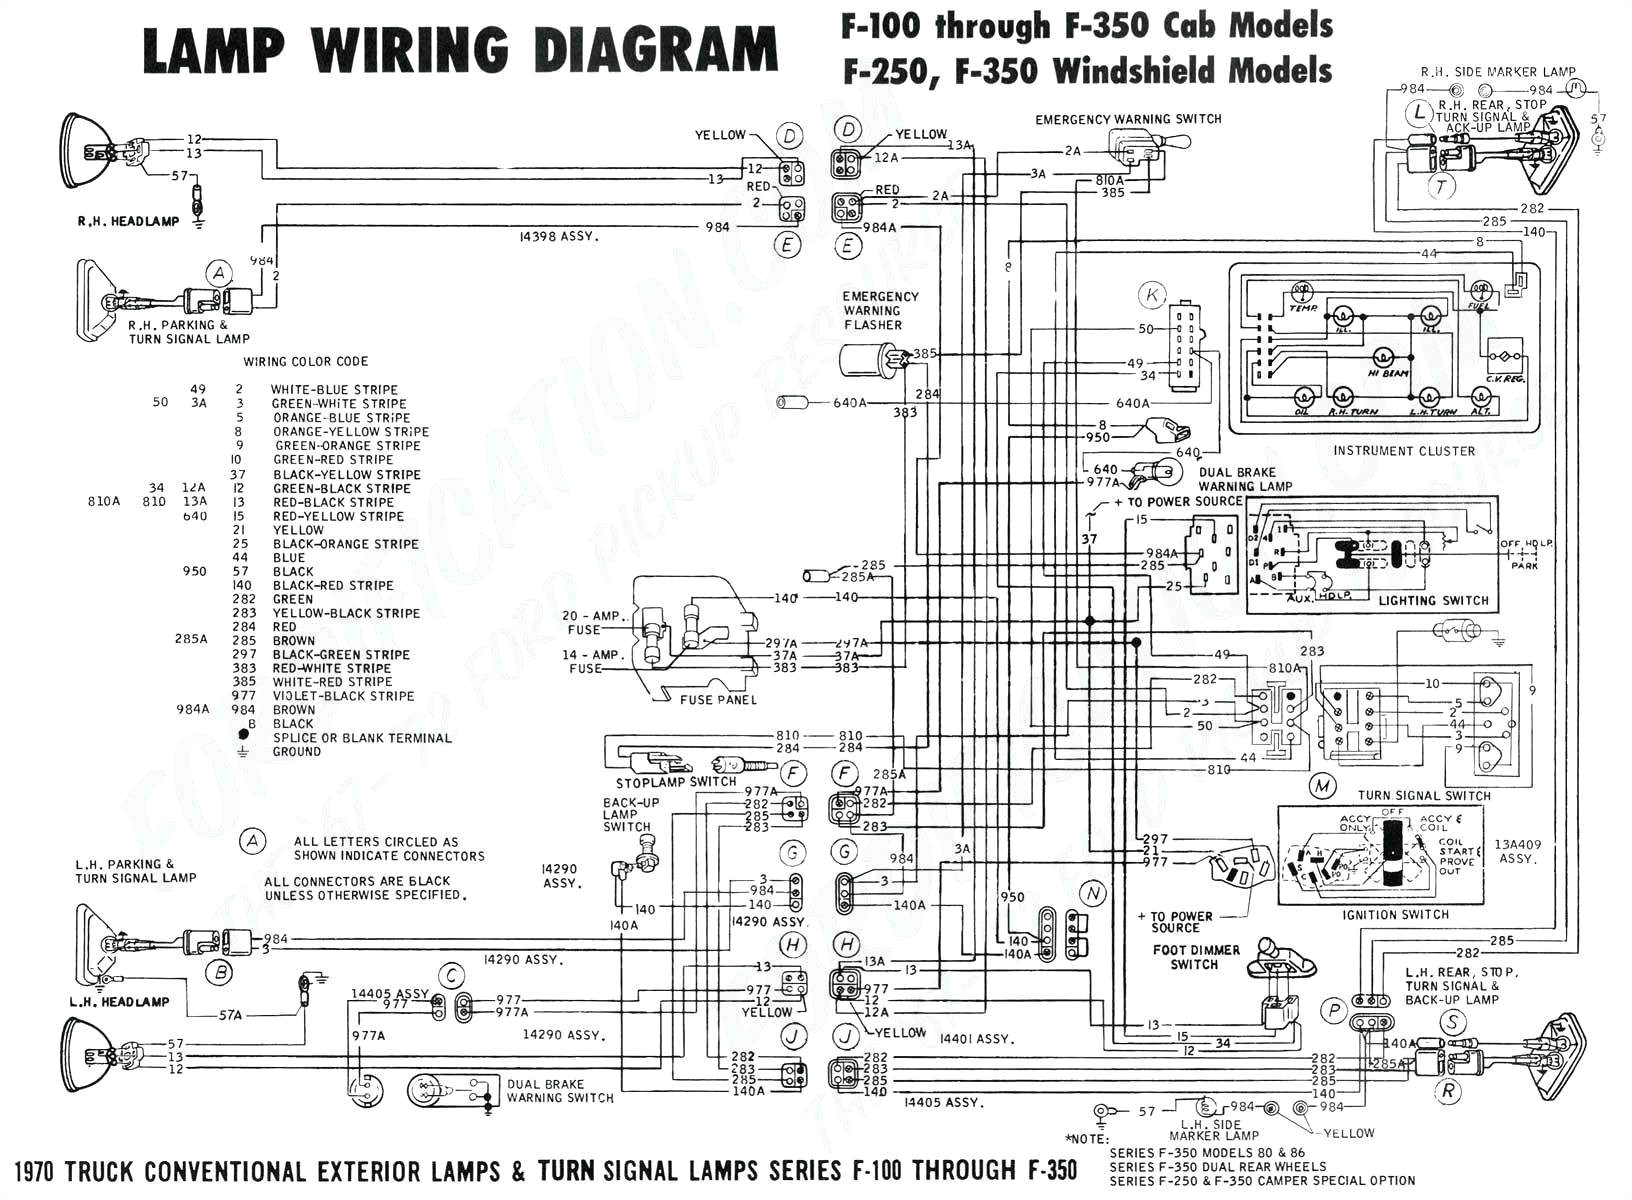 diagram likewise dc power jack schematic on dc power jack wiring 7 pole connector wiring diagram